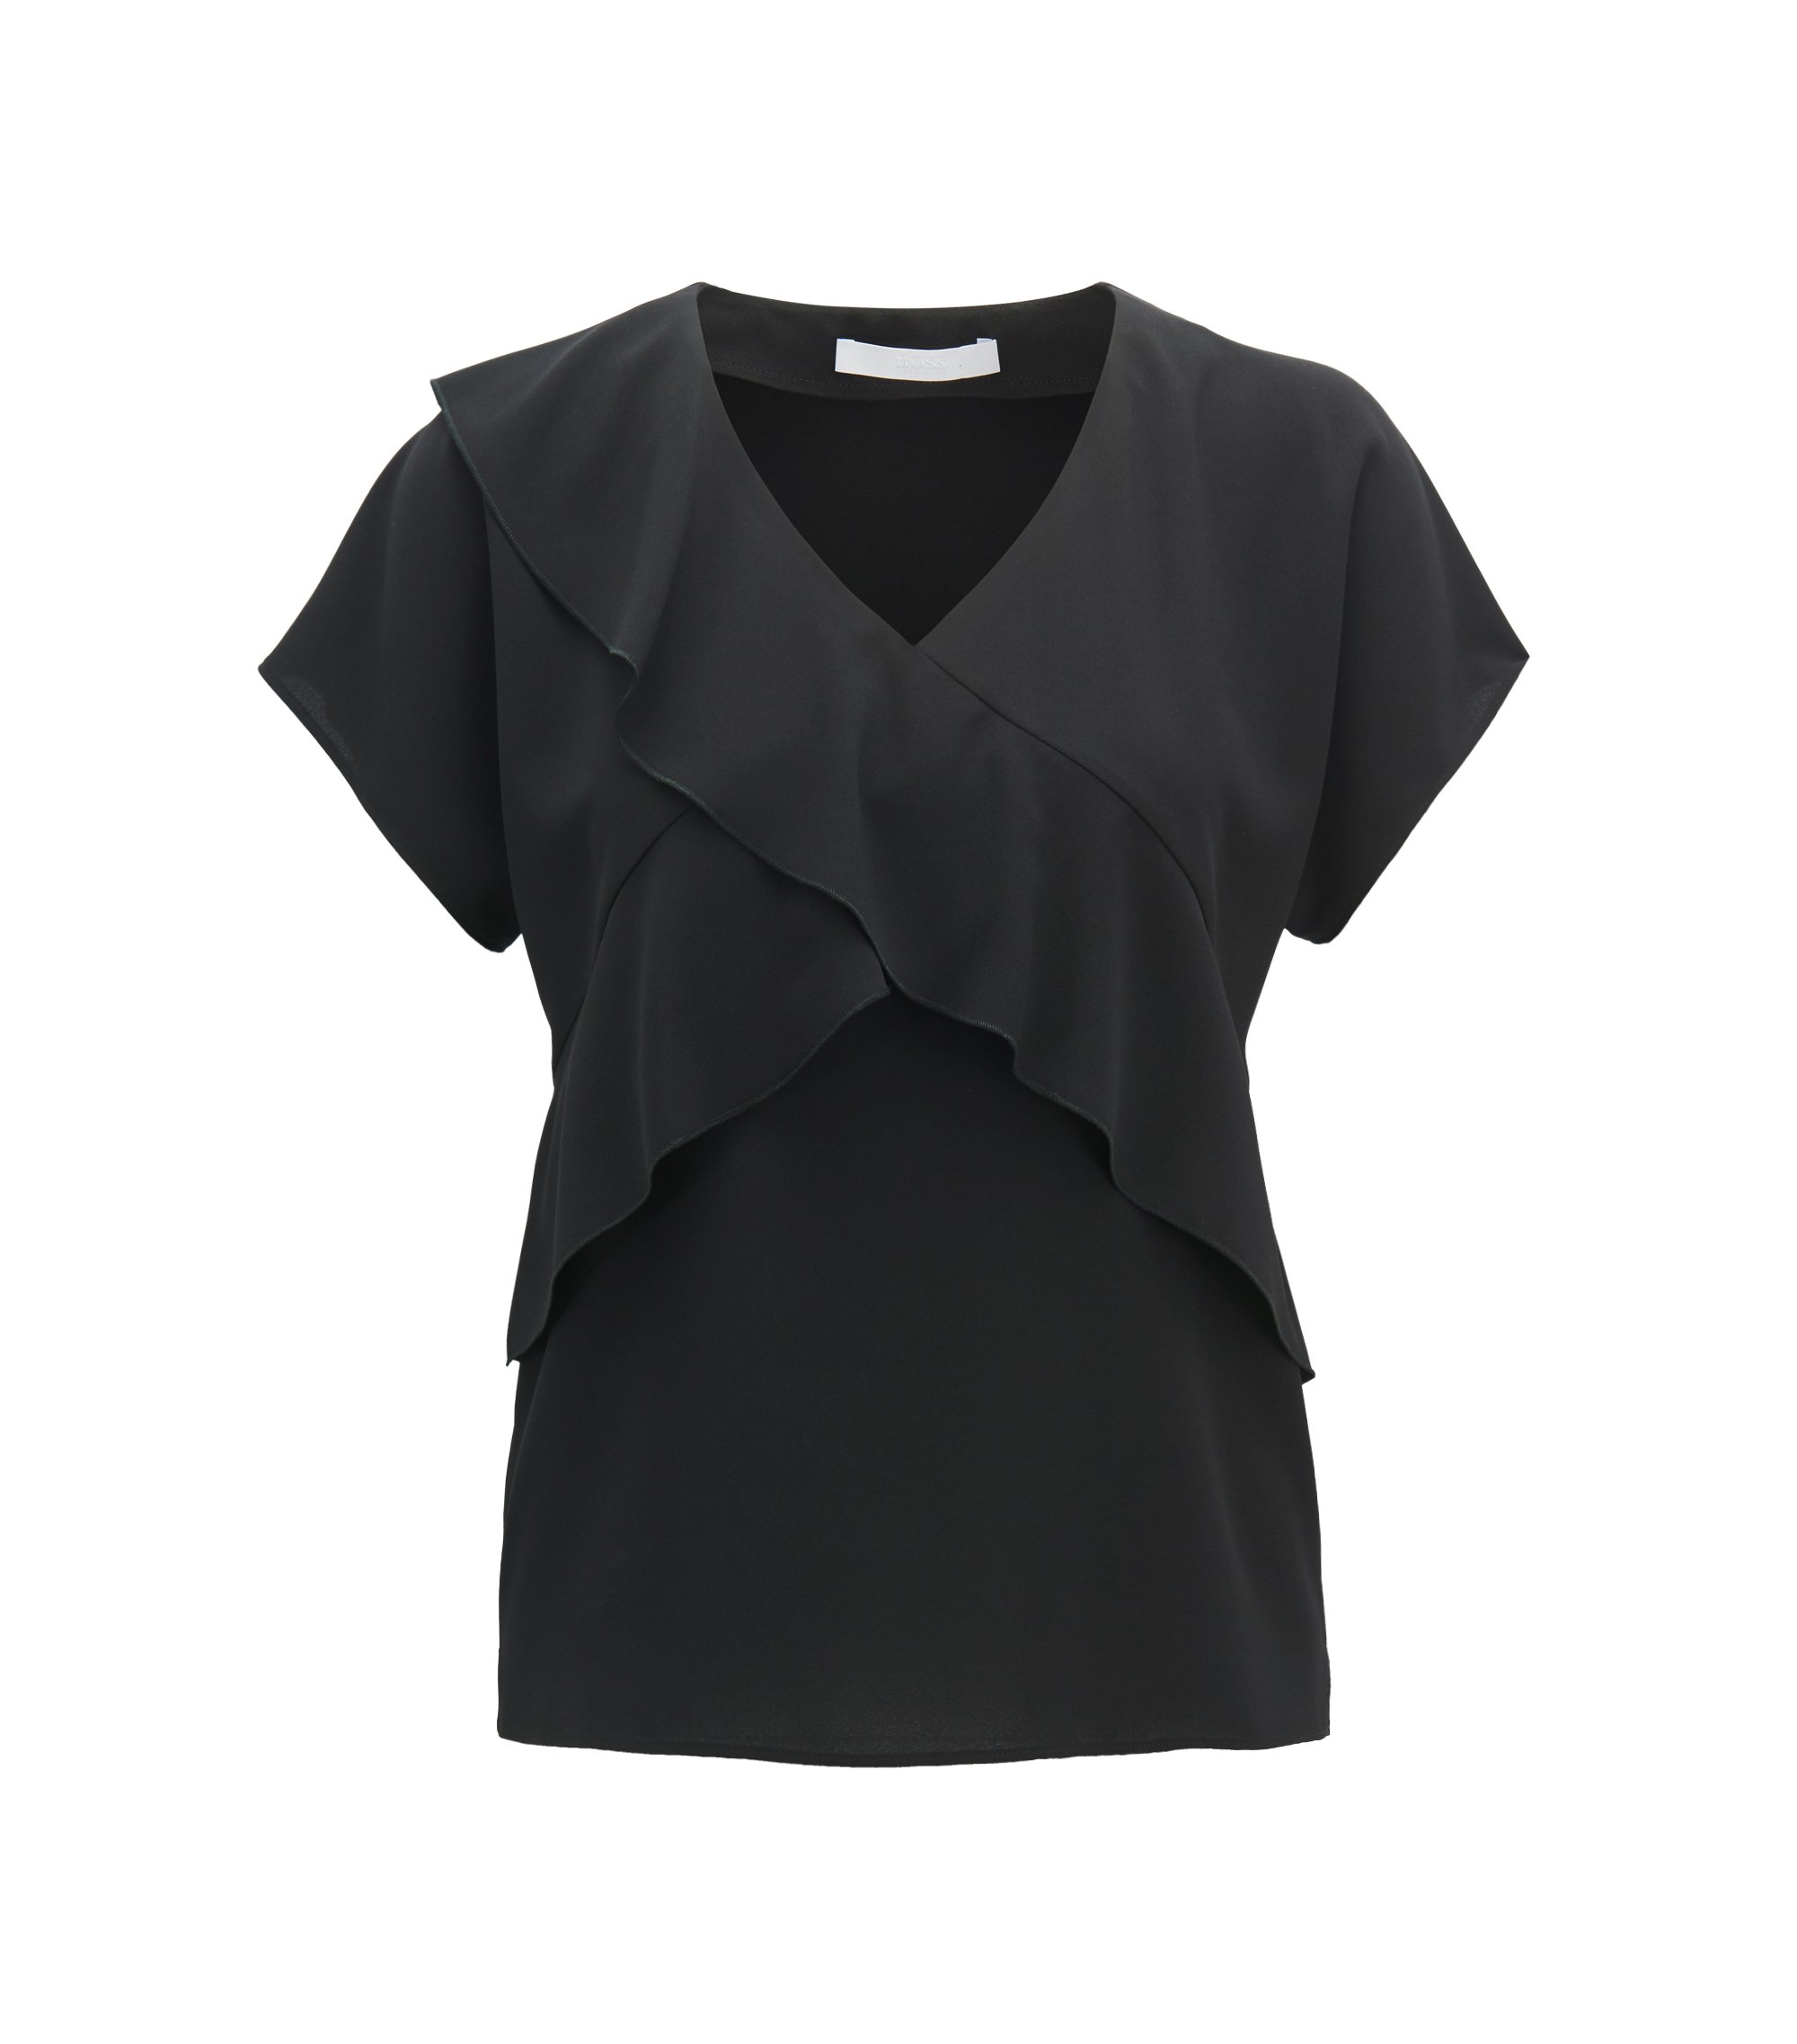 V-neck frilled top in crinkled stretch crepe, Black